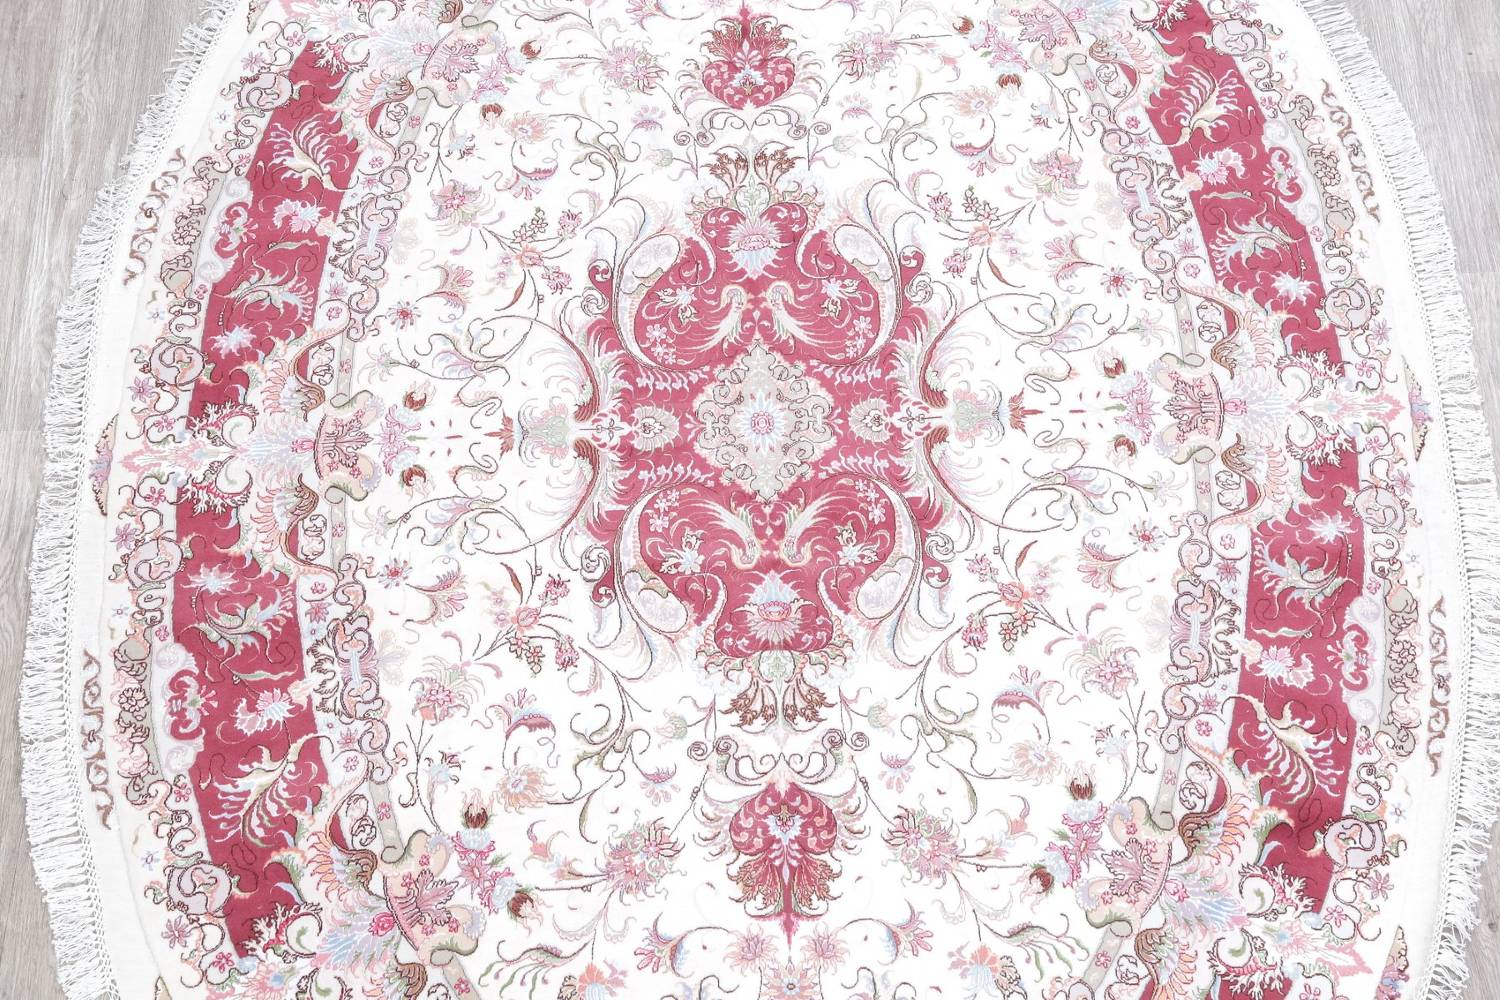 Vegetable Dye Floral Ivory Tabriz Persian Hand-Knotted Area Rug 7x10 image 3